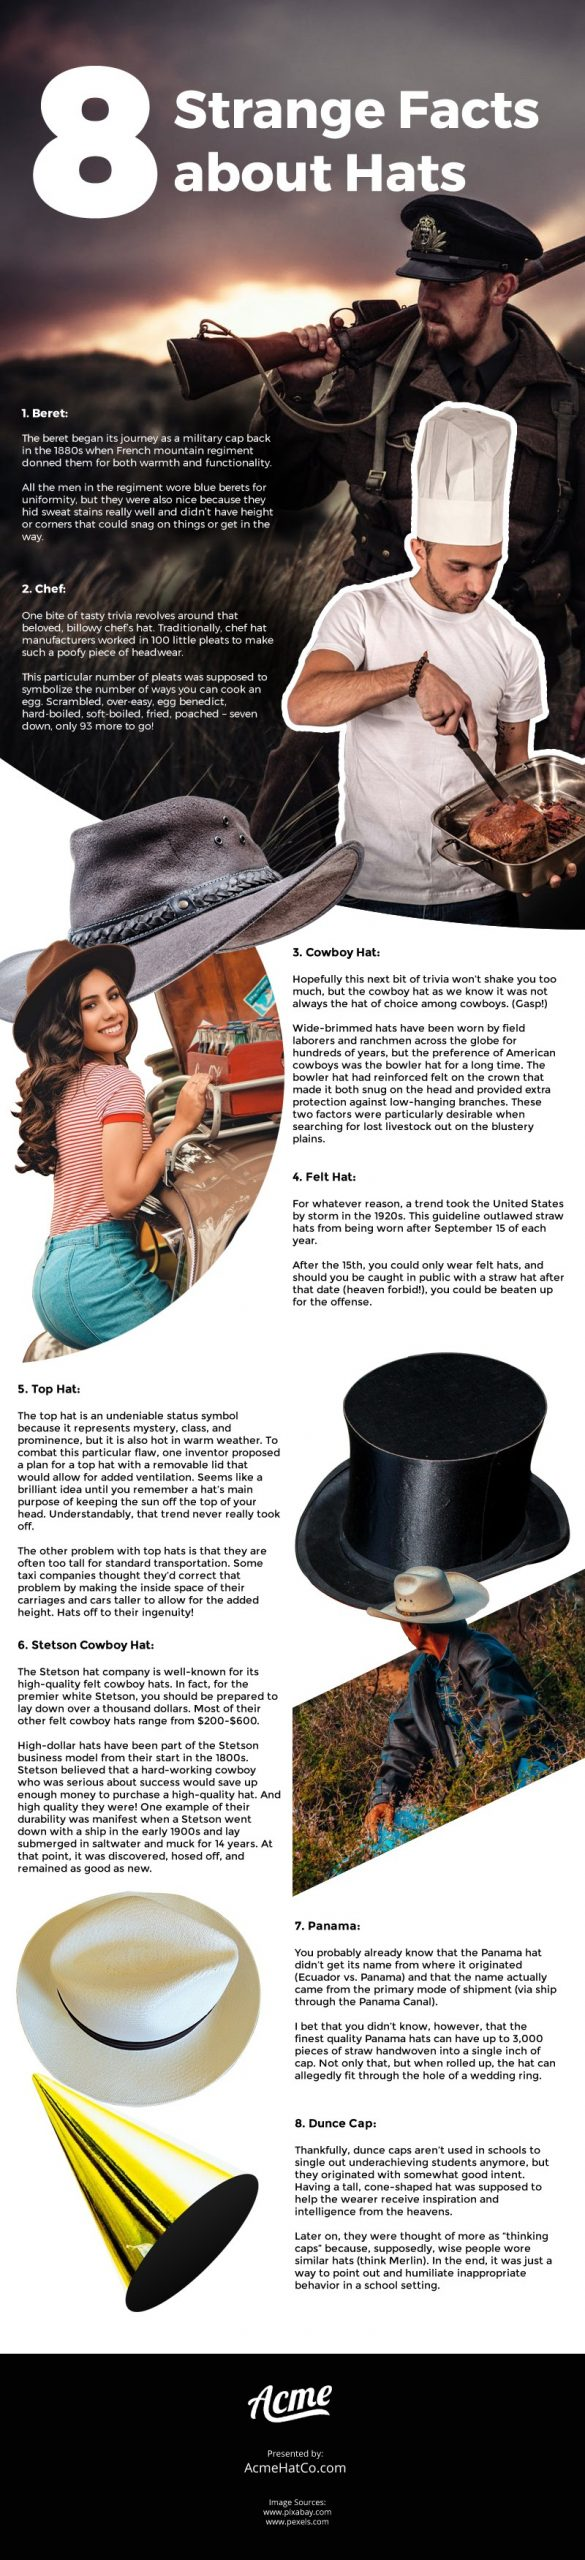 8 Strange Facts about Hats [infographic]